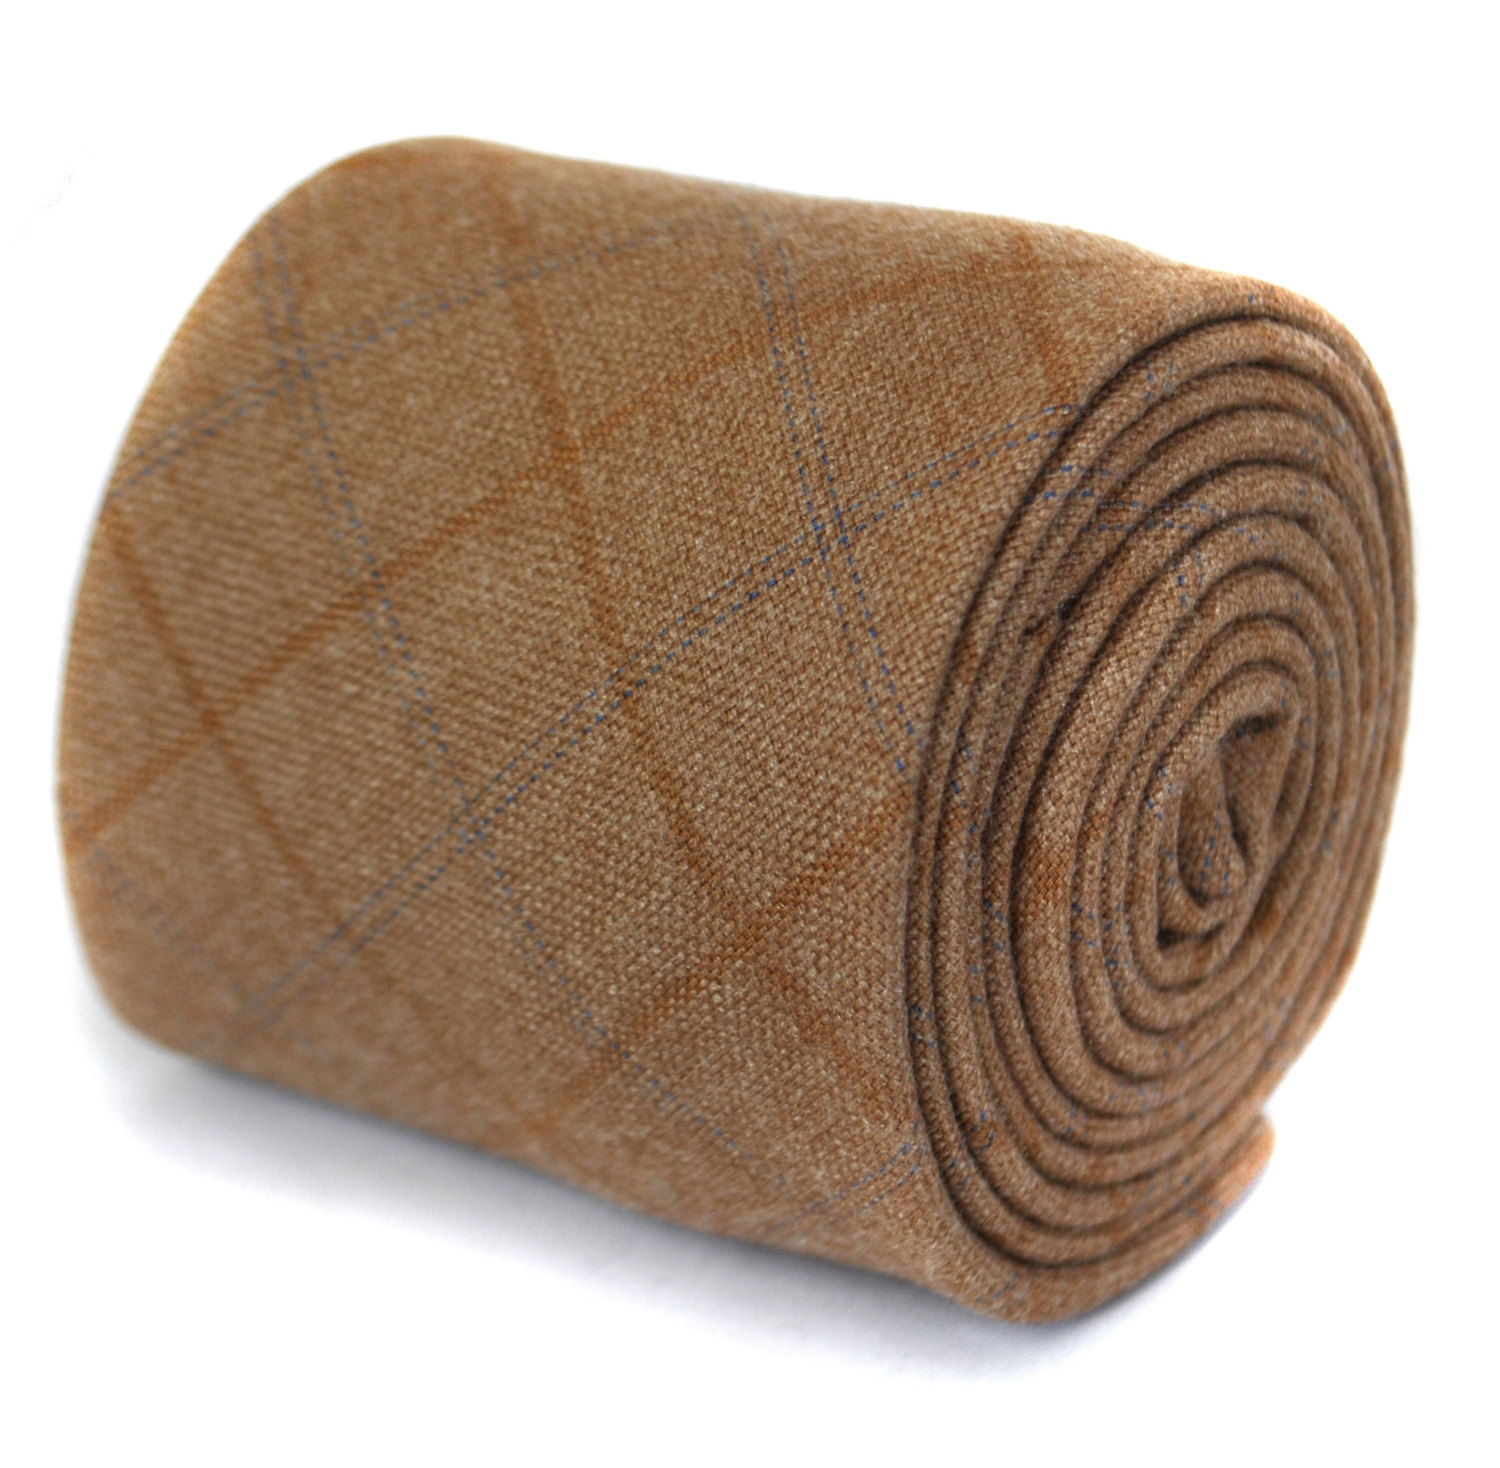 light brown tweed wool tie by Frederick Thomas FT1940